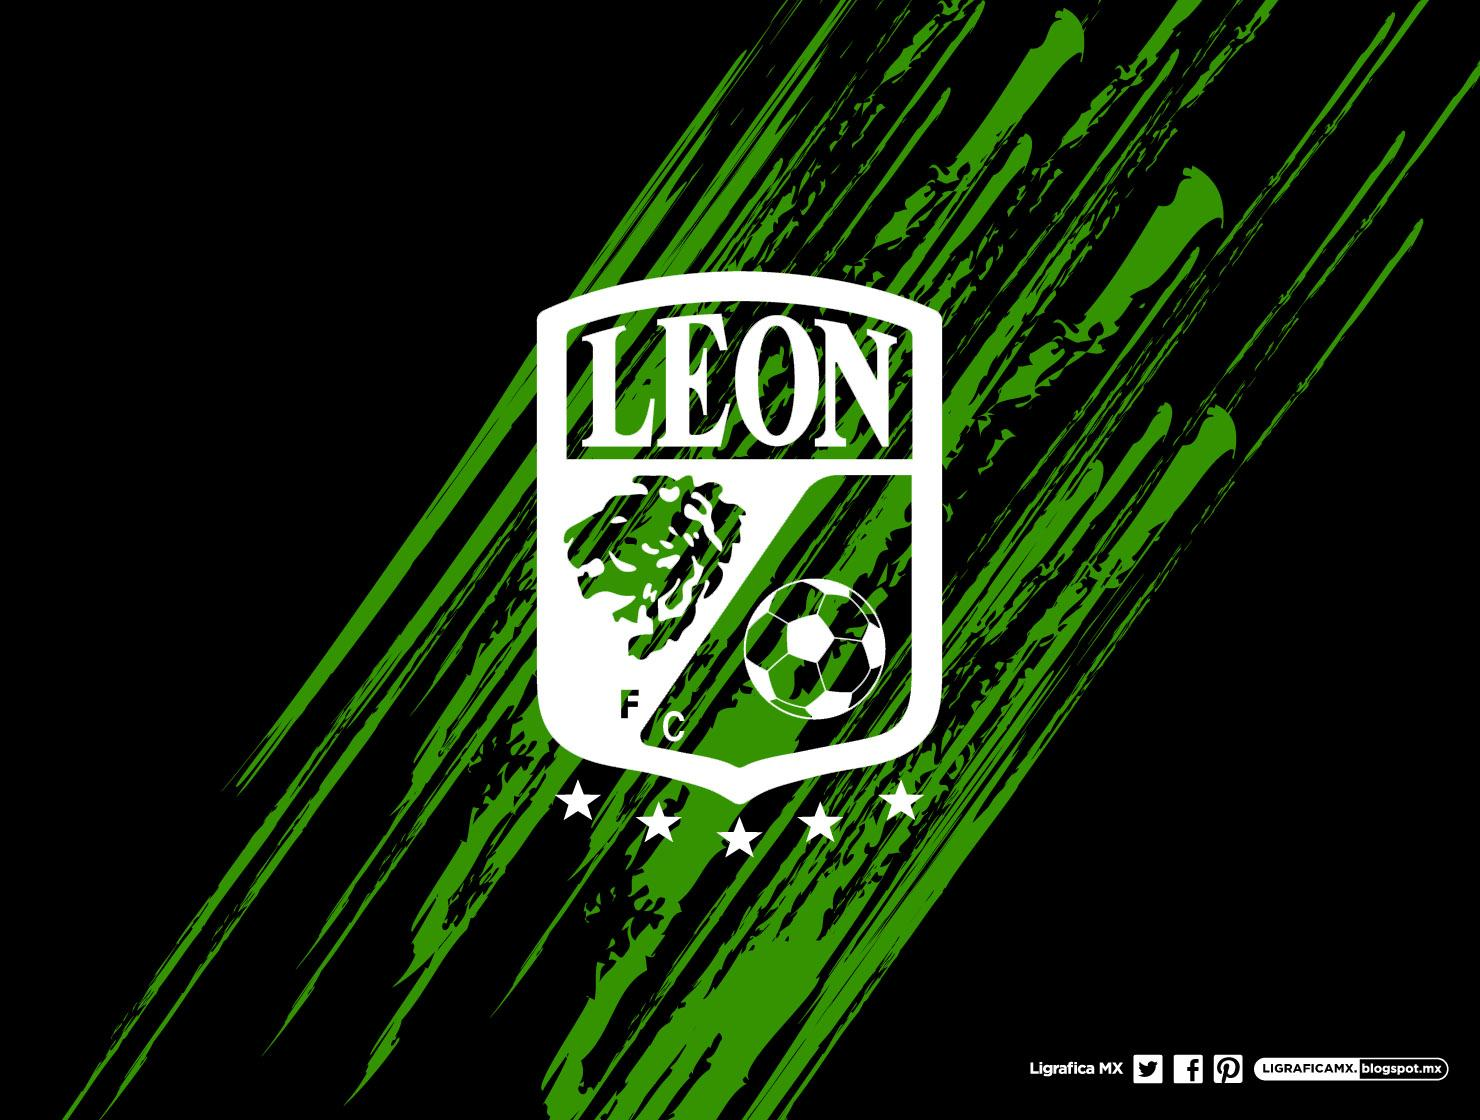 Best 44+ Leon Wallpaper on HipWallpaper | Chameleon Wallpaper ...